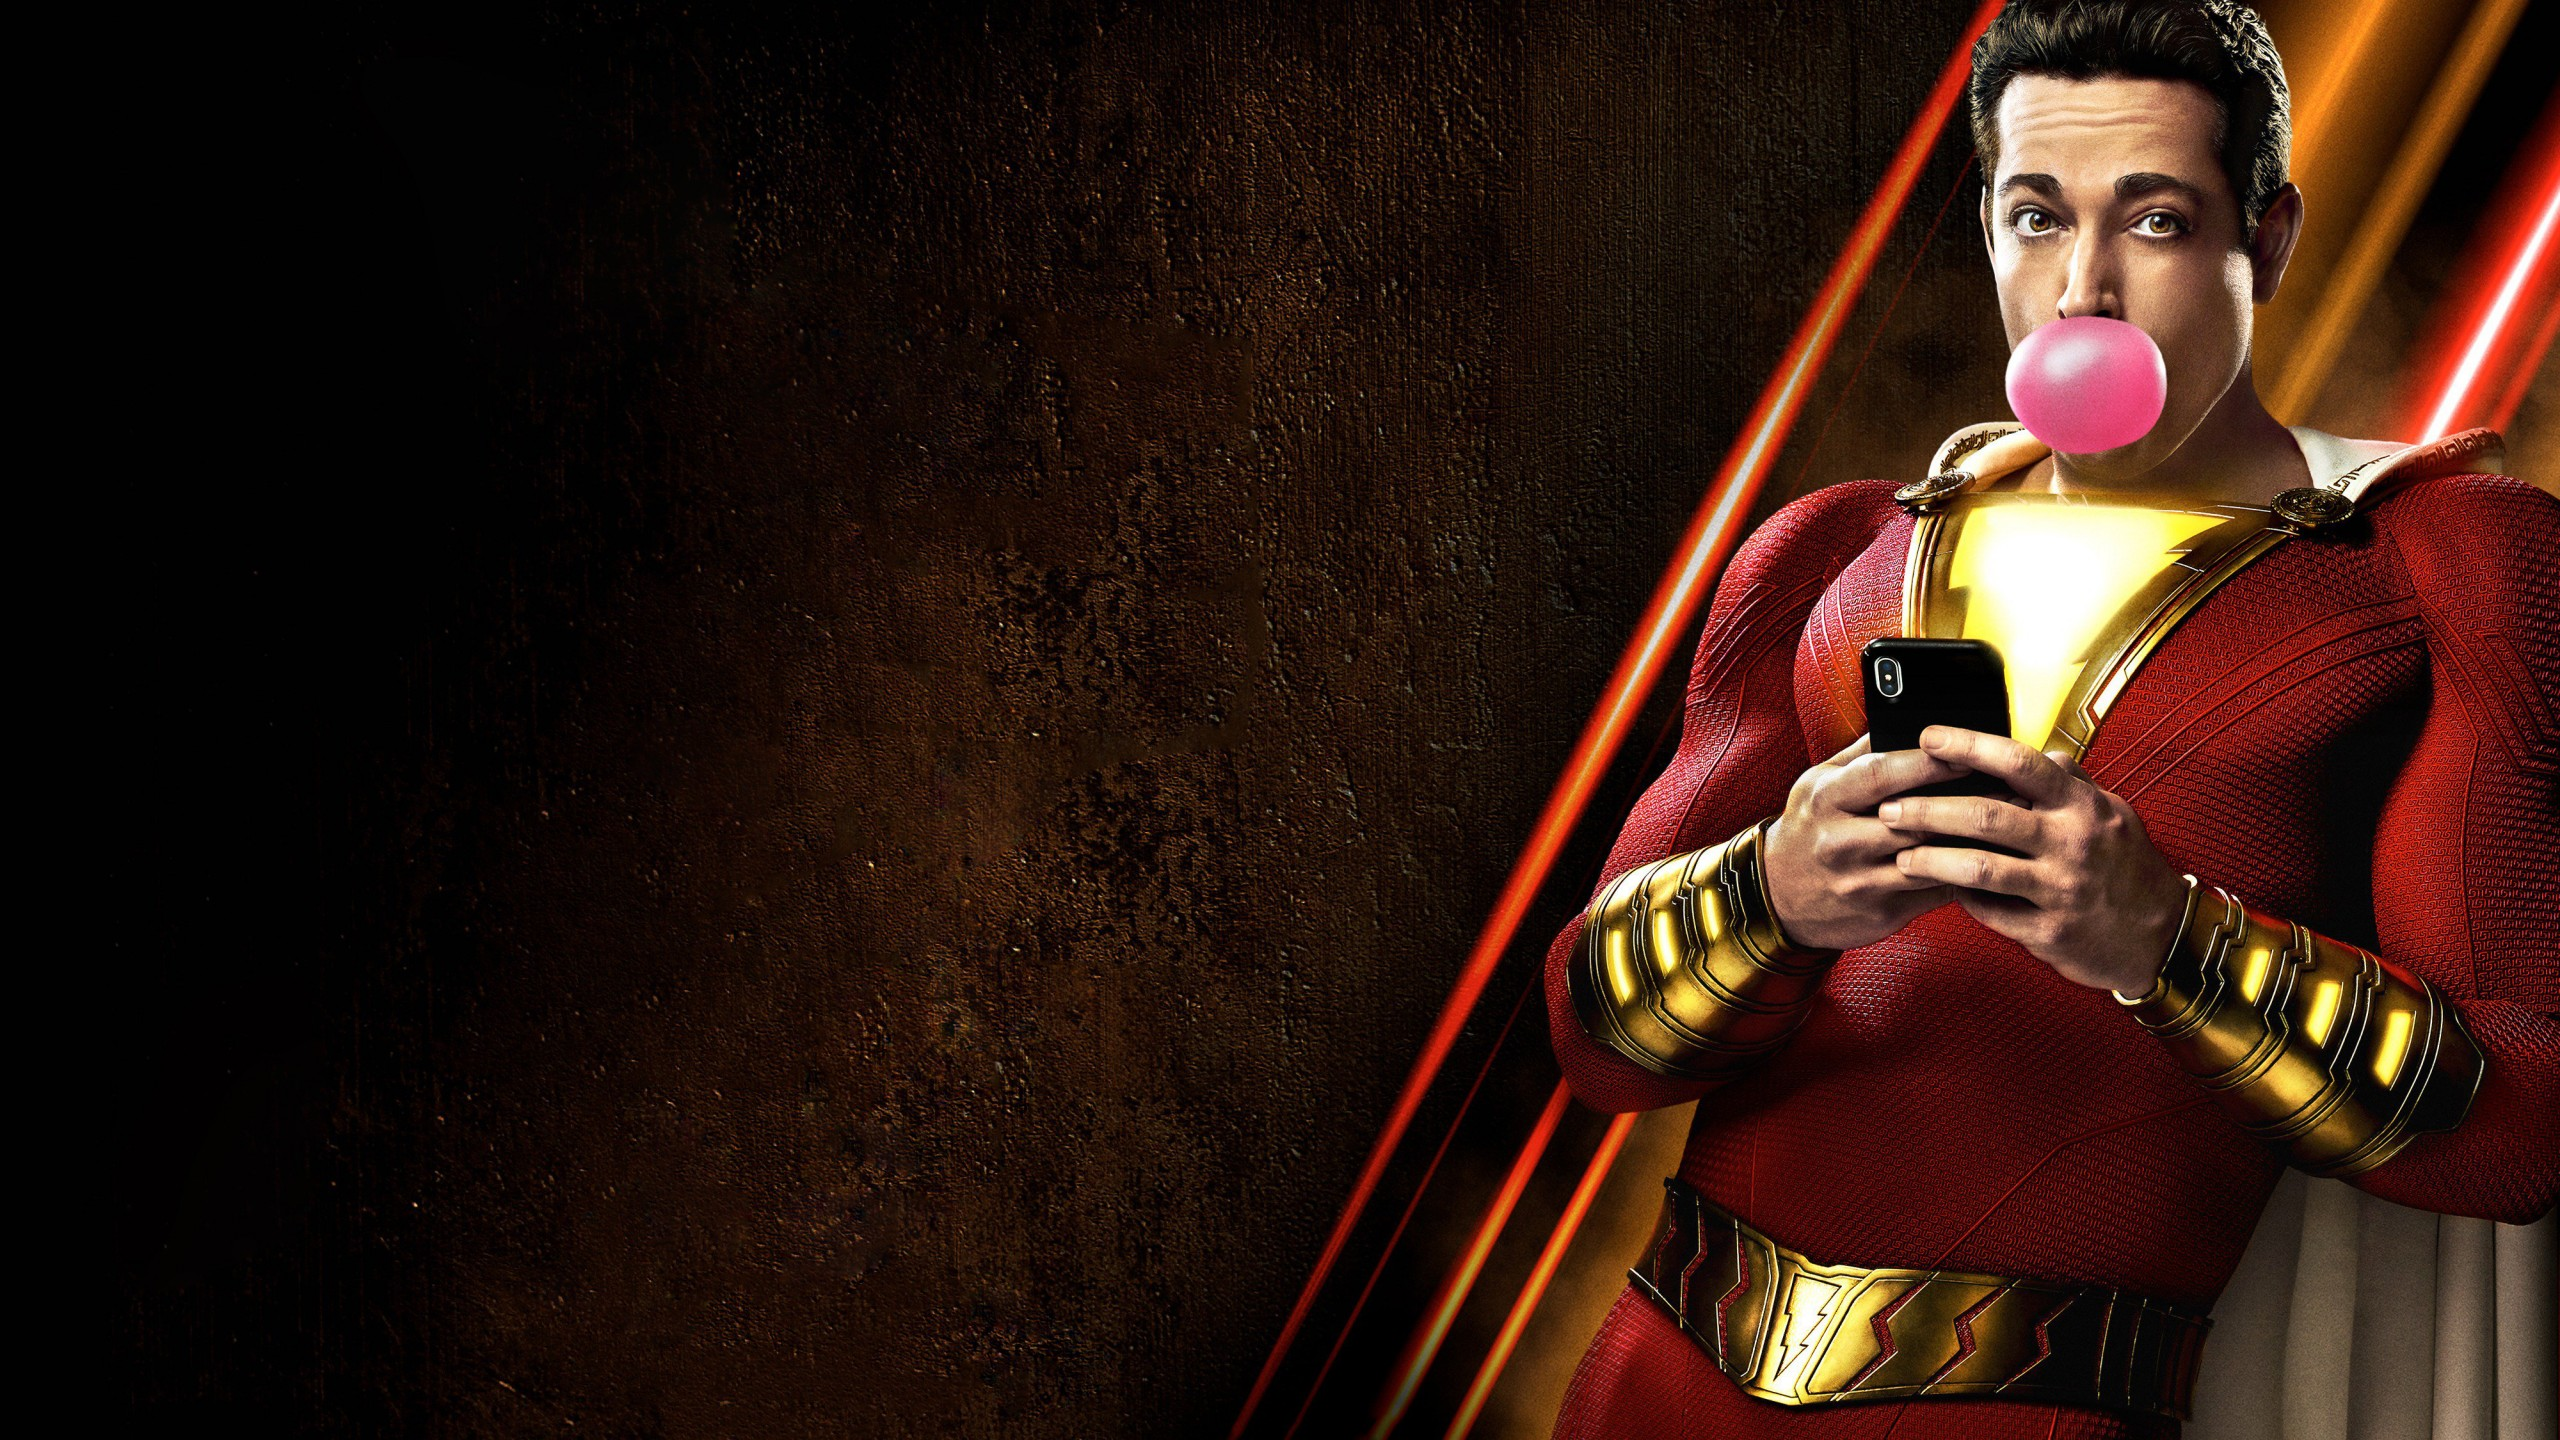 Wallpaper Shazam poster 4K Movies 20985 2560x1440